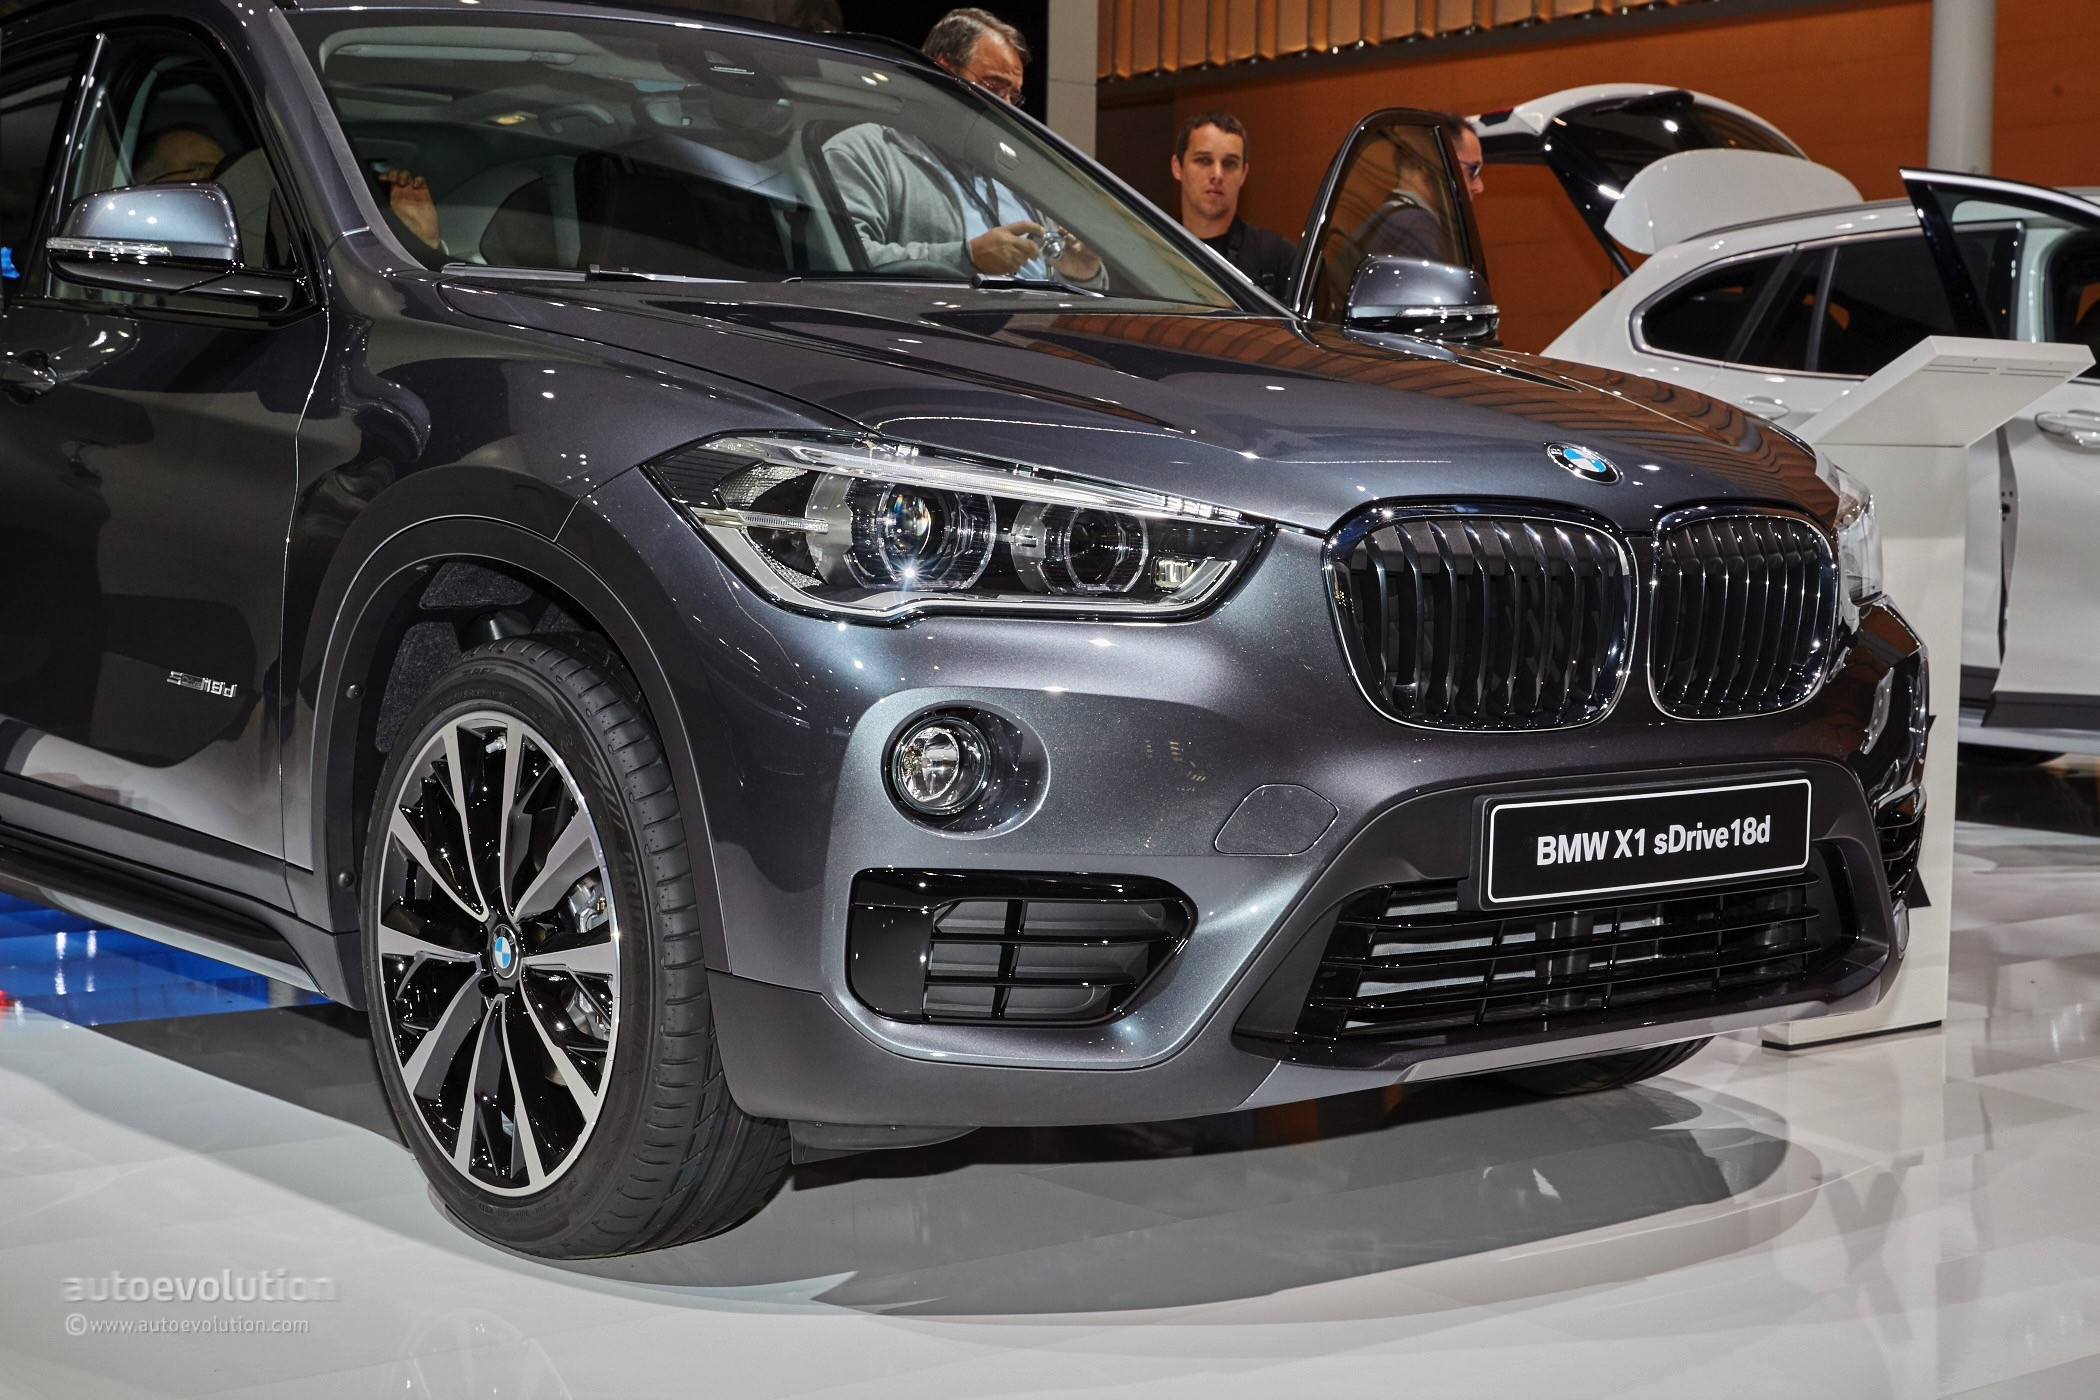 The First Fwd Bmw X1 Looks Amazing In M Sport Guise At